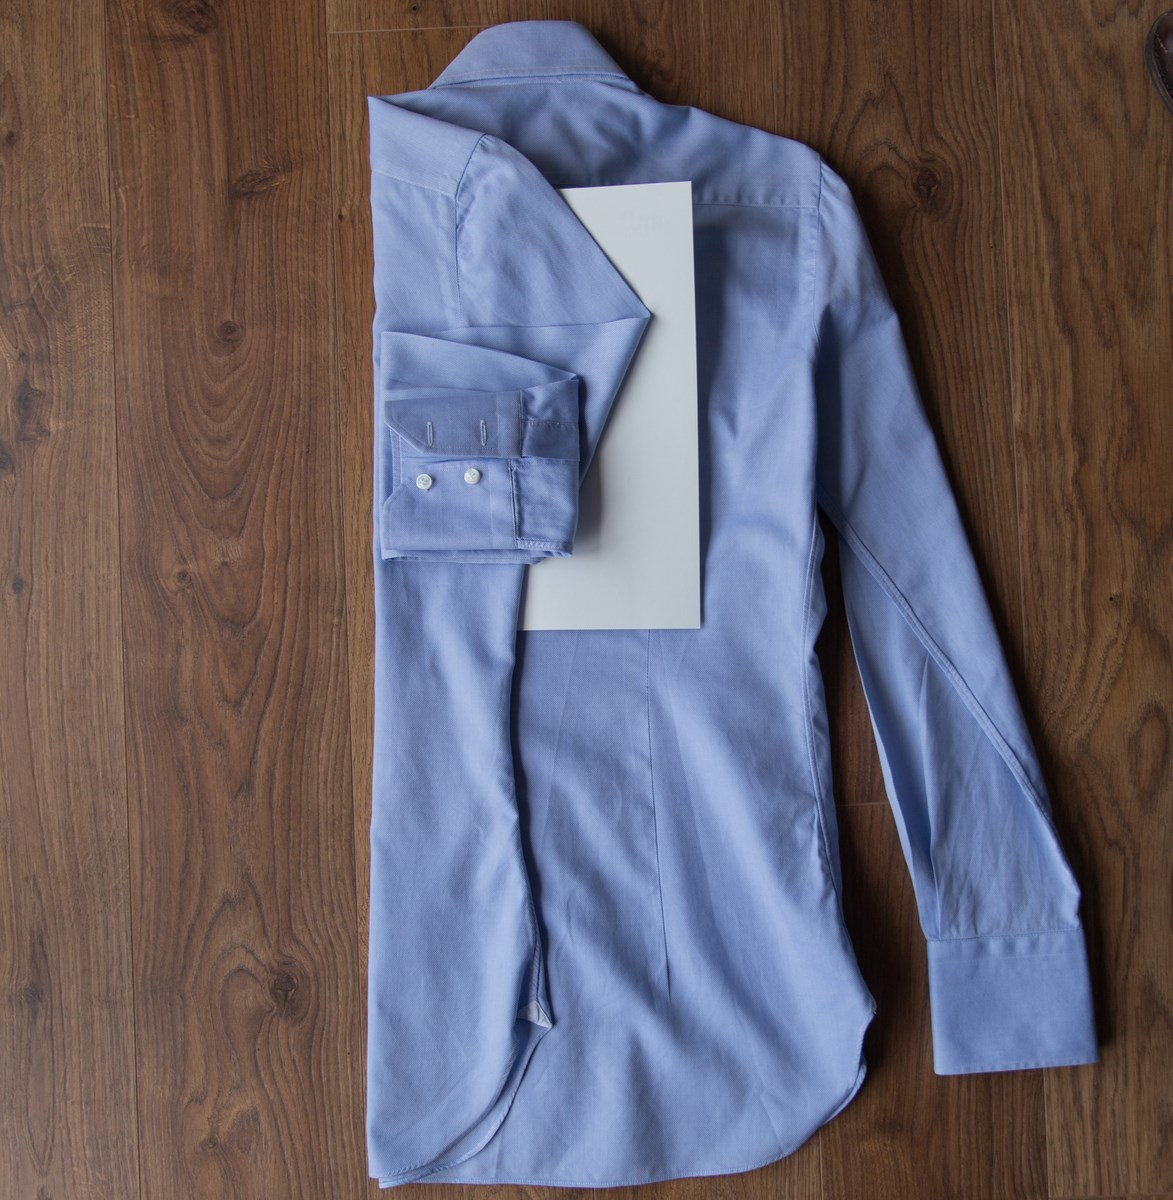 How to fold a shirt 2